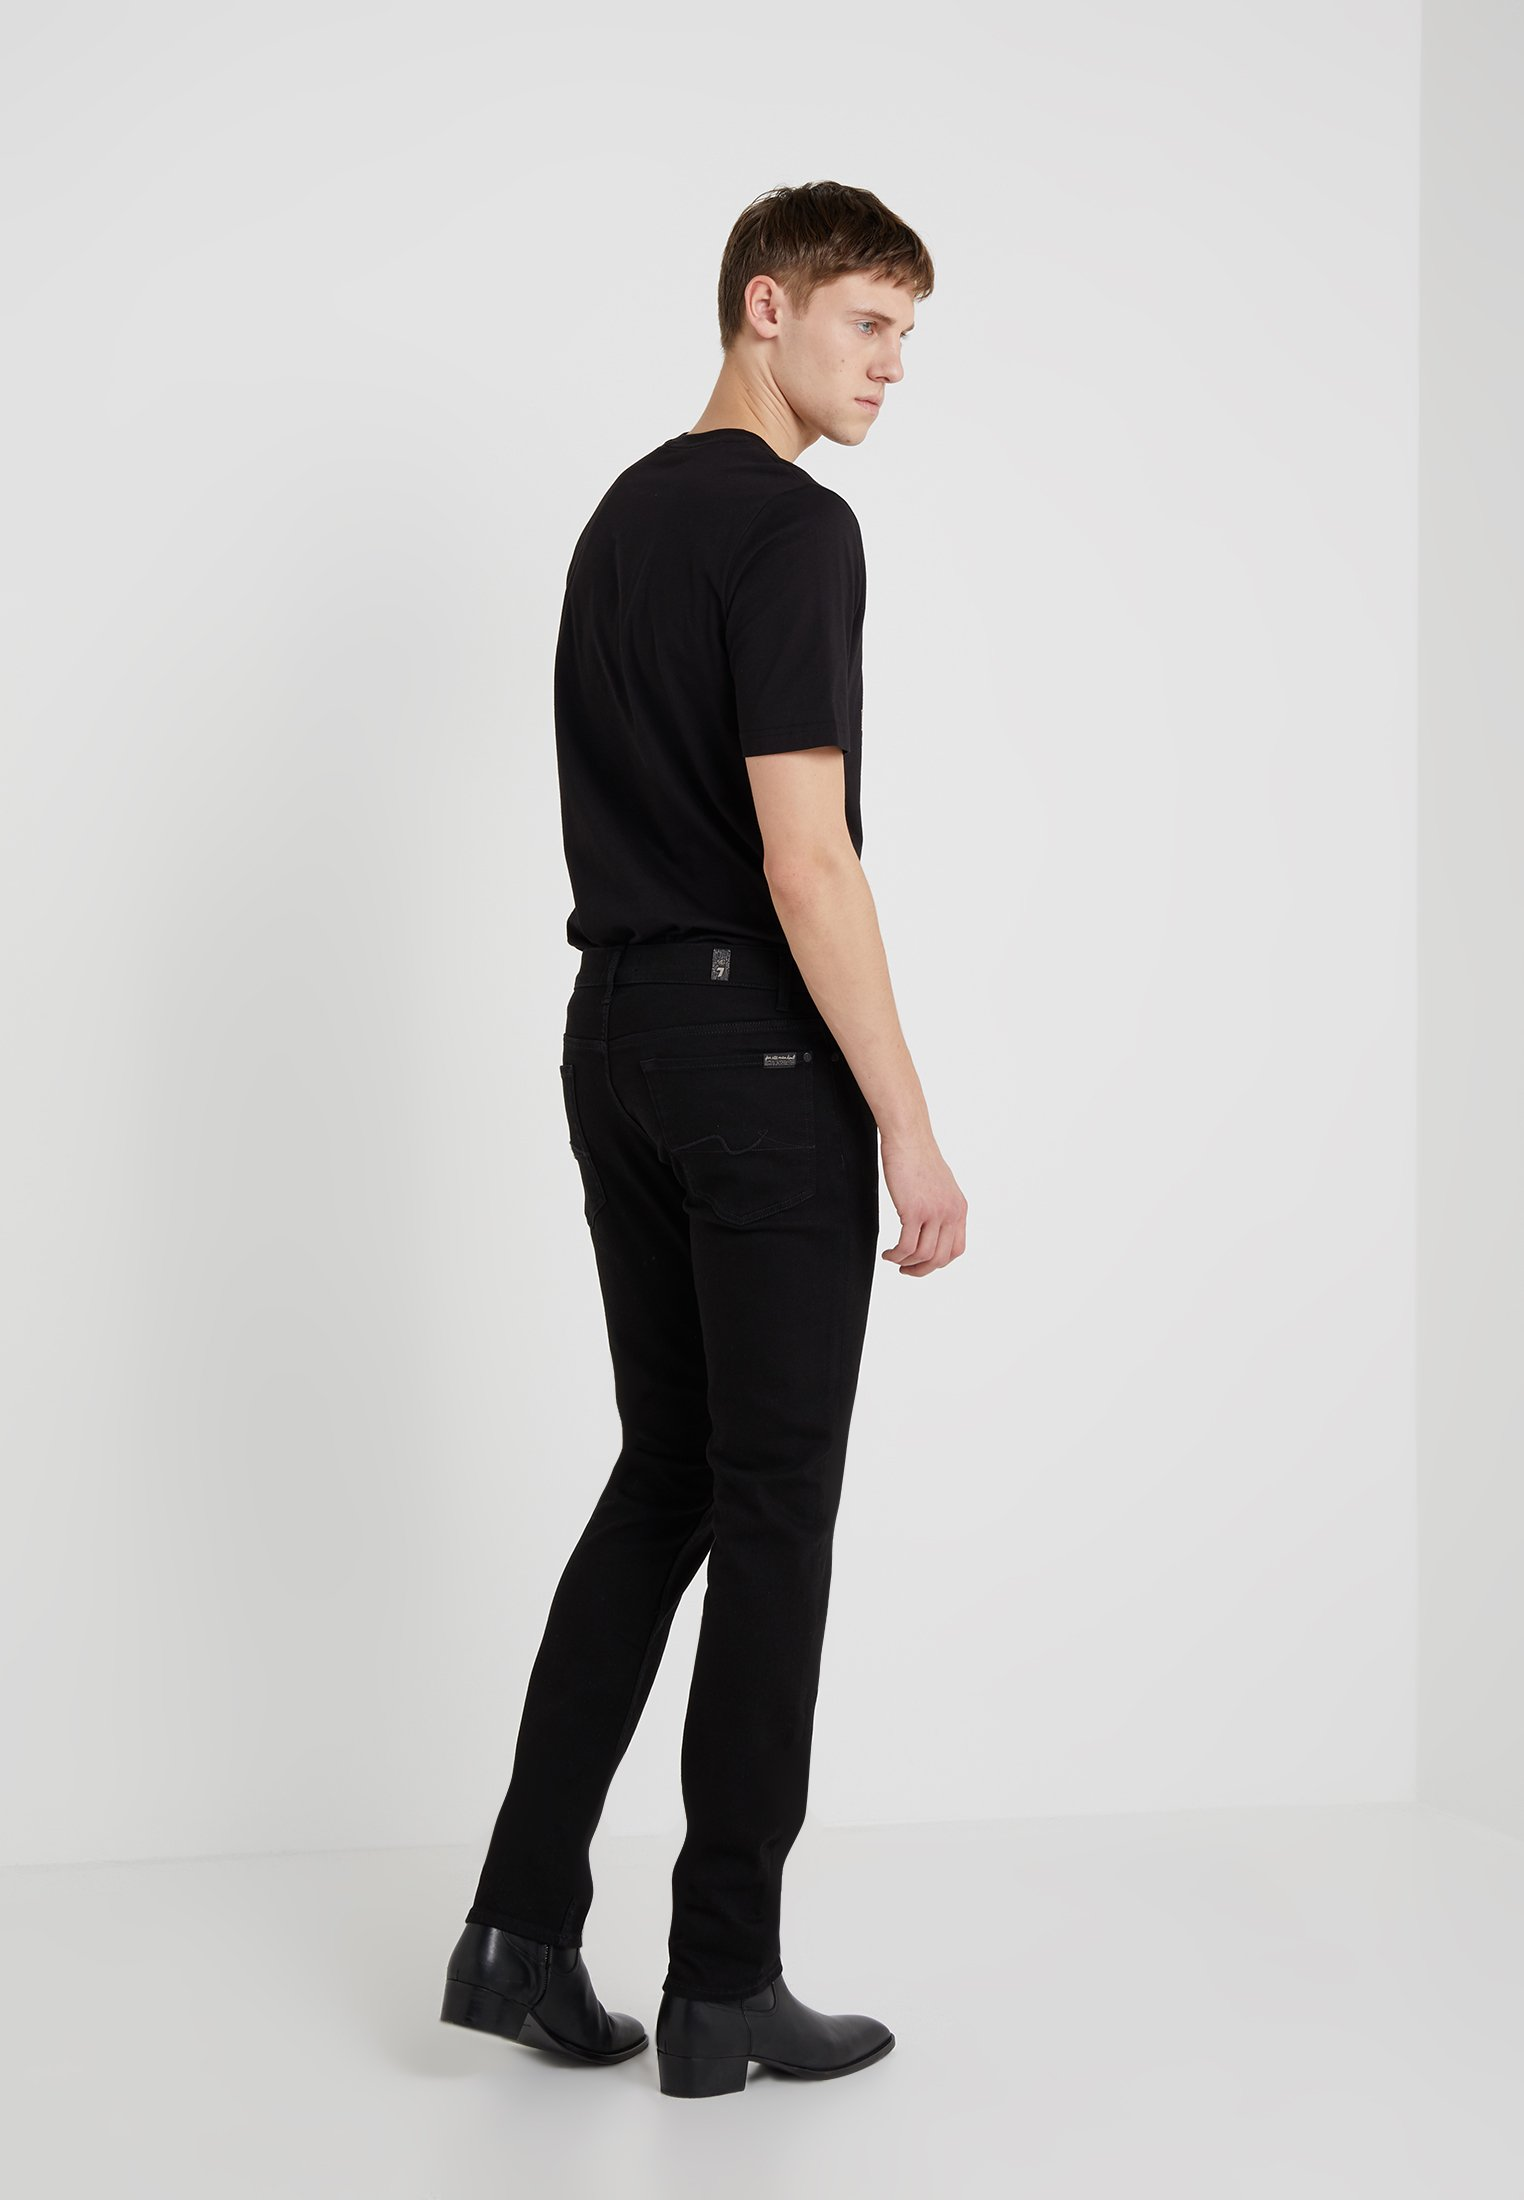 Ronnie Mankind Black Luxe For All Rinse PerformanceJean 7 Slim 5jAR34L